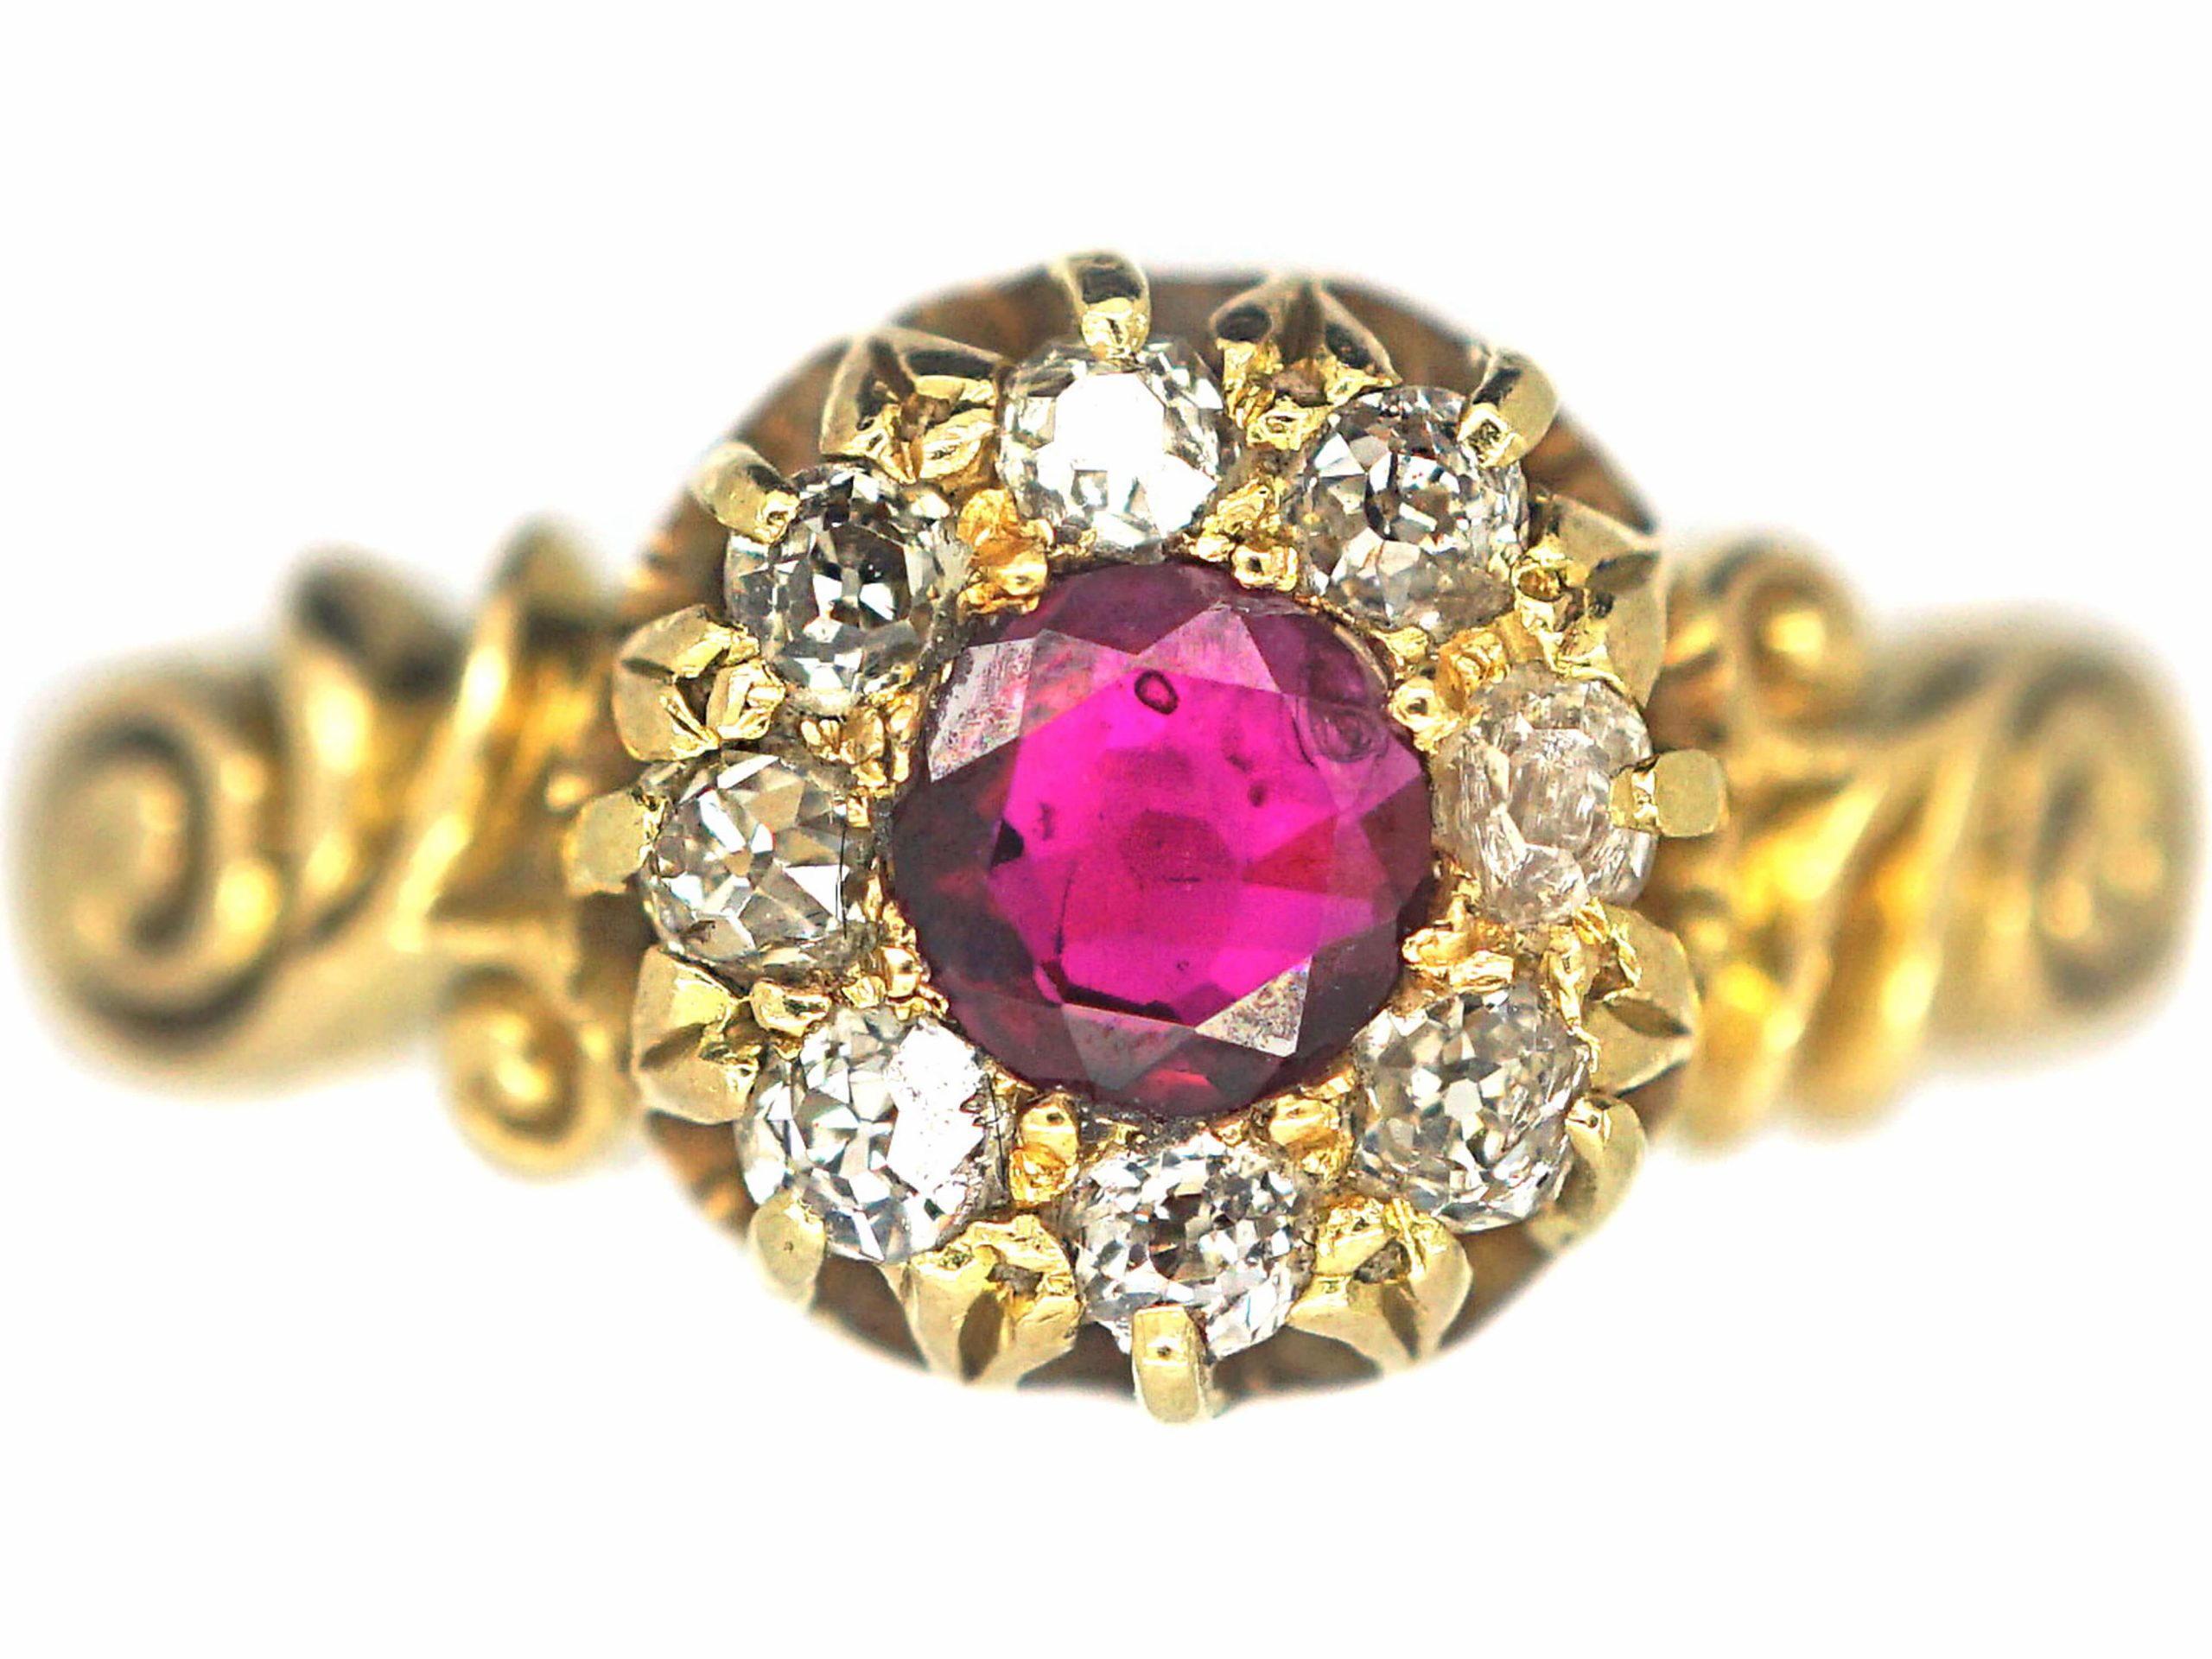 Victorian 18ct Gold Ruby & Diamond Cluster Ring with Ornate Shoulders